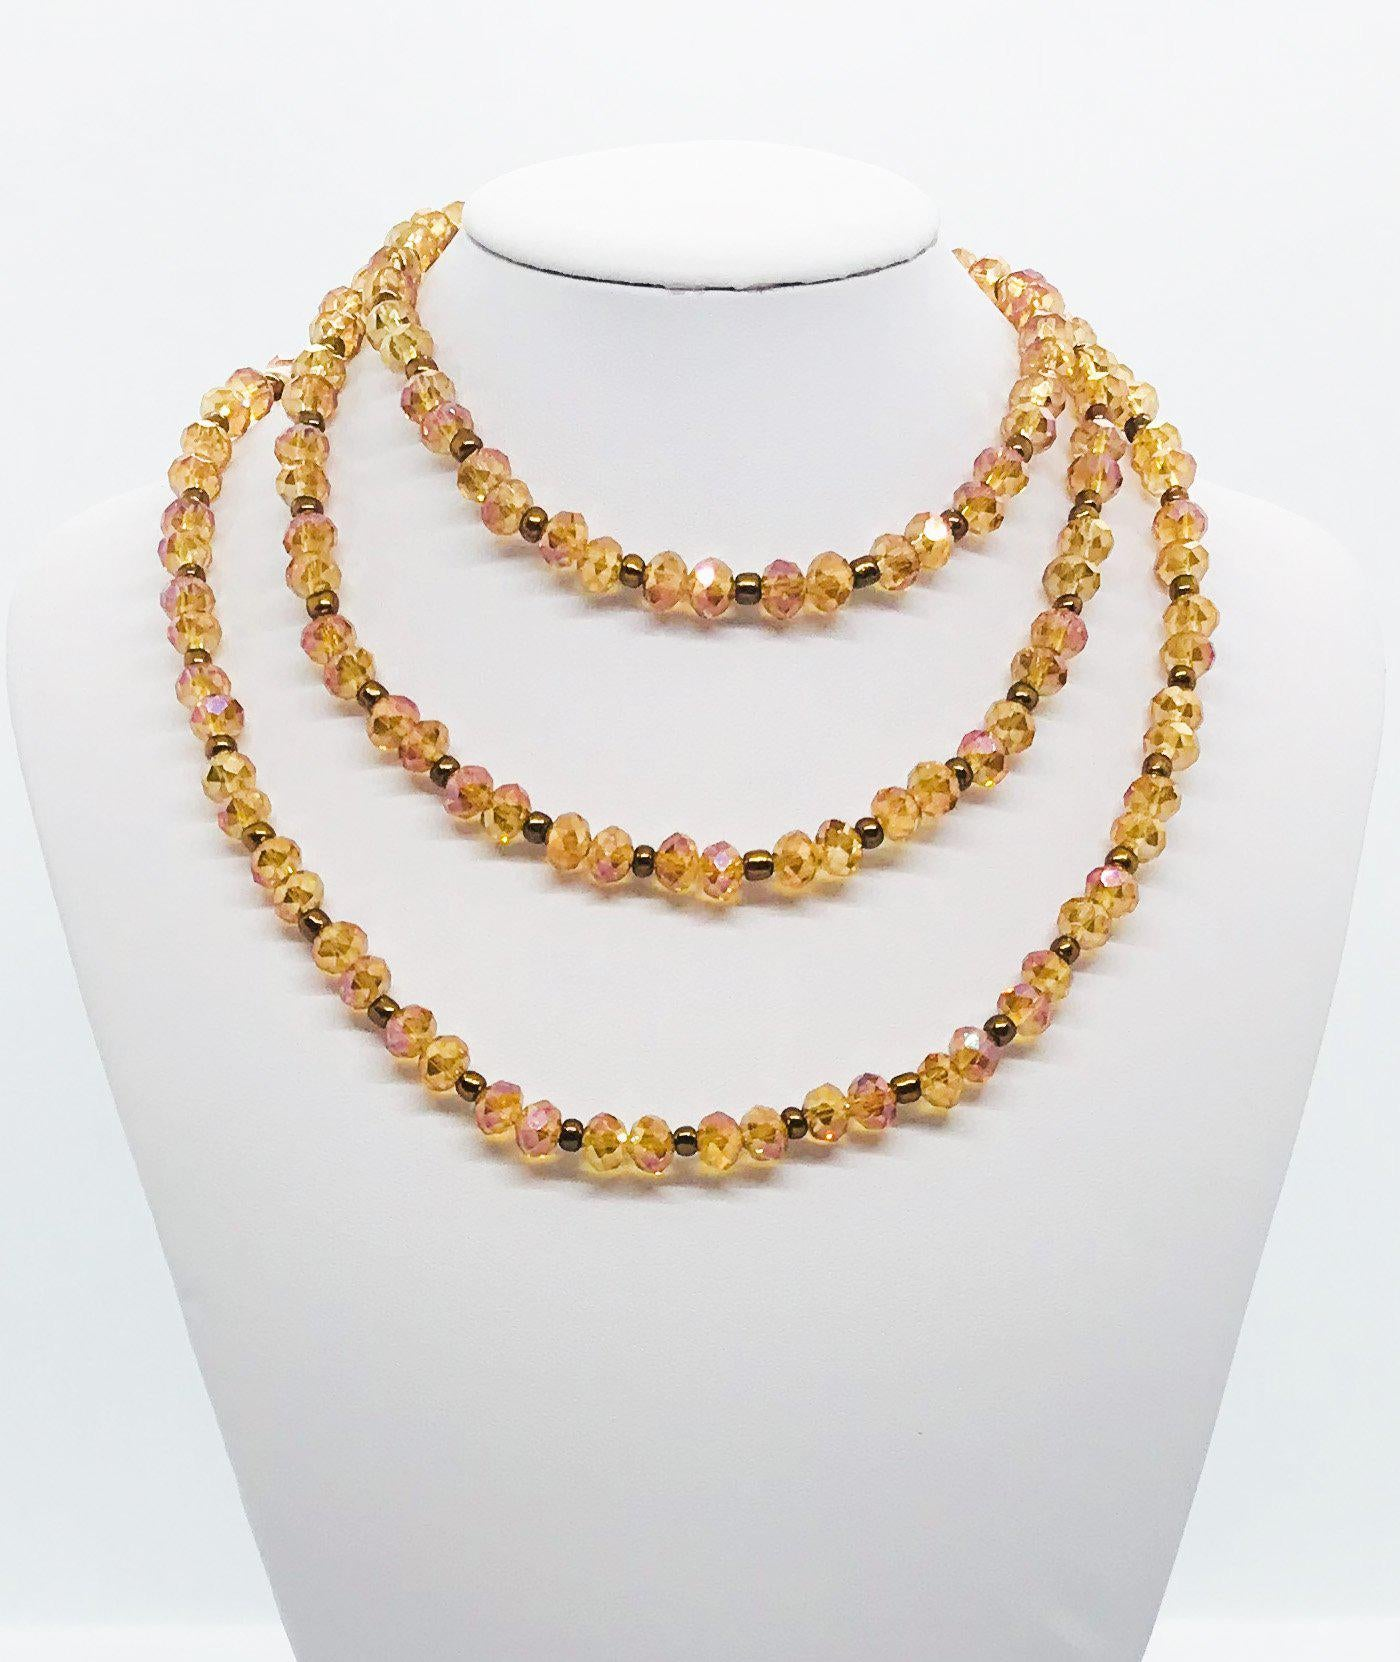 Tan and Brown Glass Bead Necklace - N161